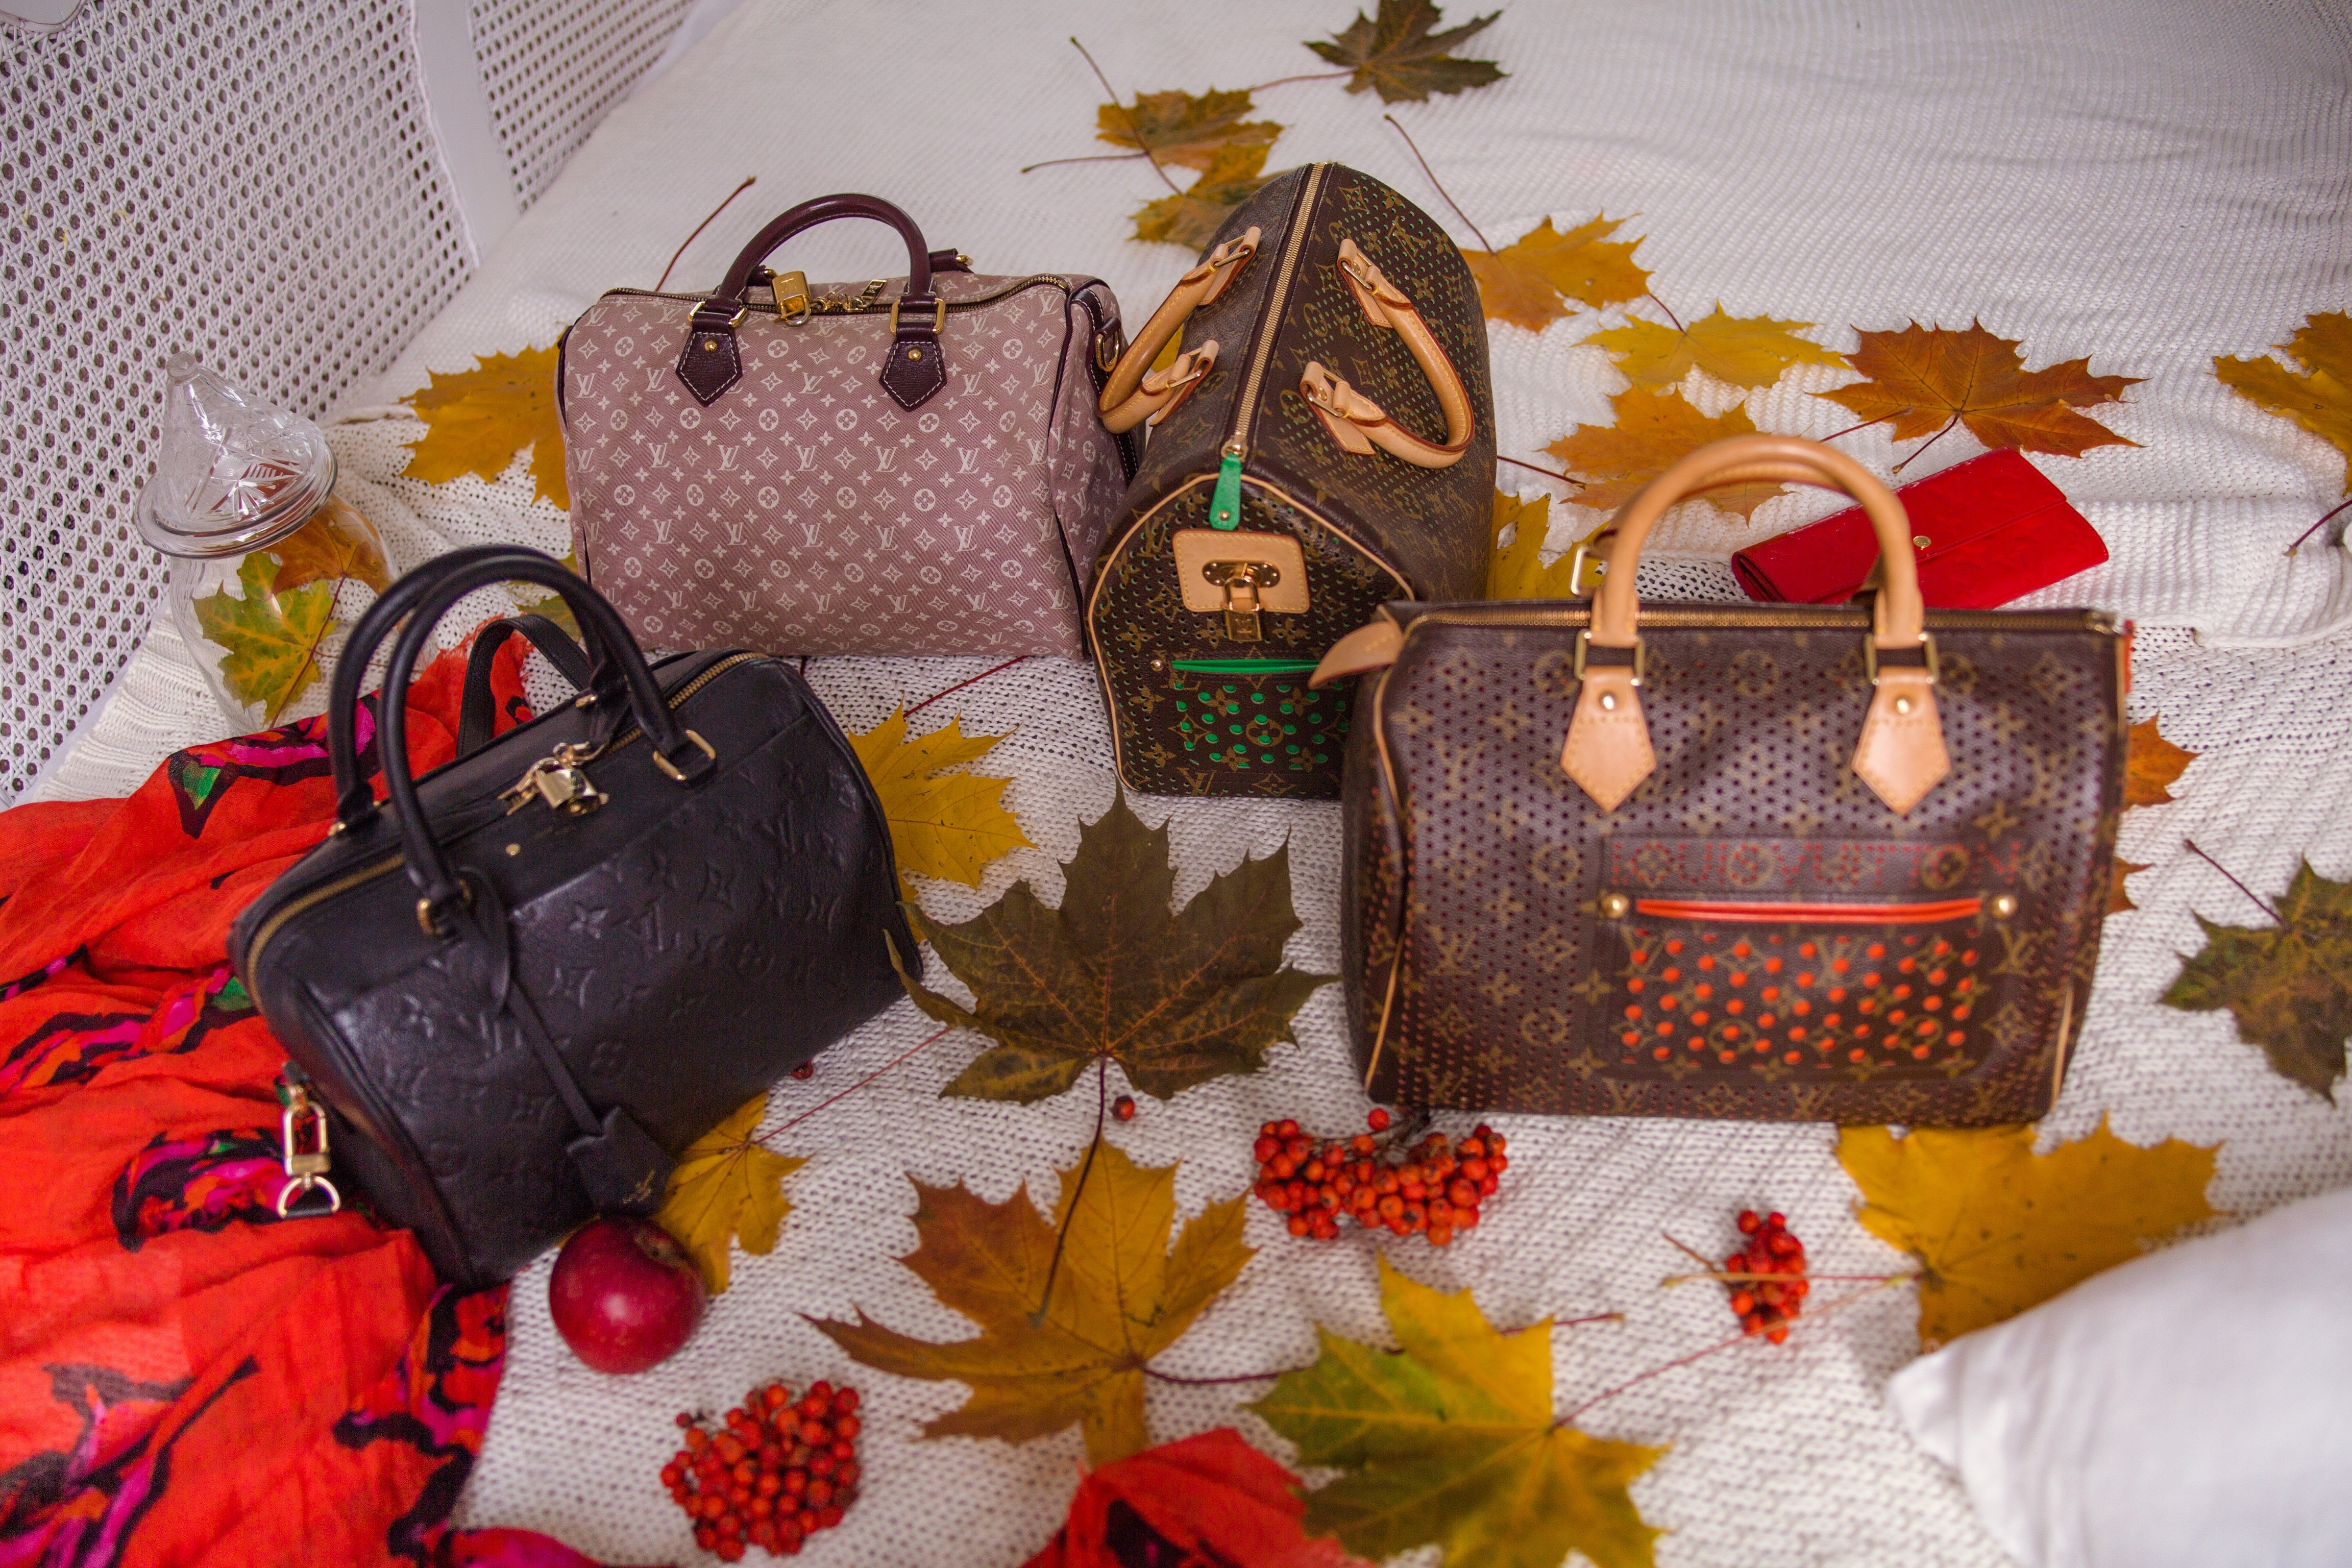 Which Louis Vuitton Classic Bag To Buy: LV Alma vs LV Speedy Speedy materials available